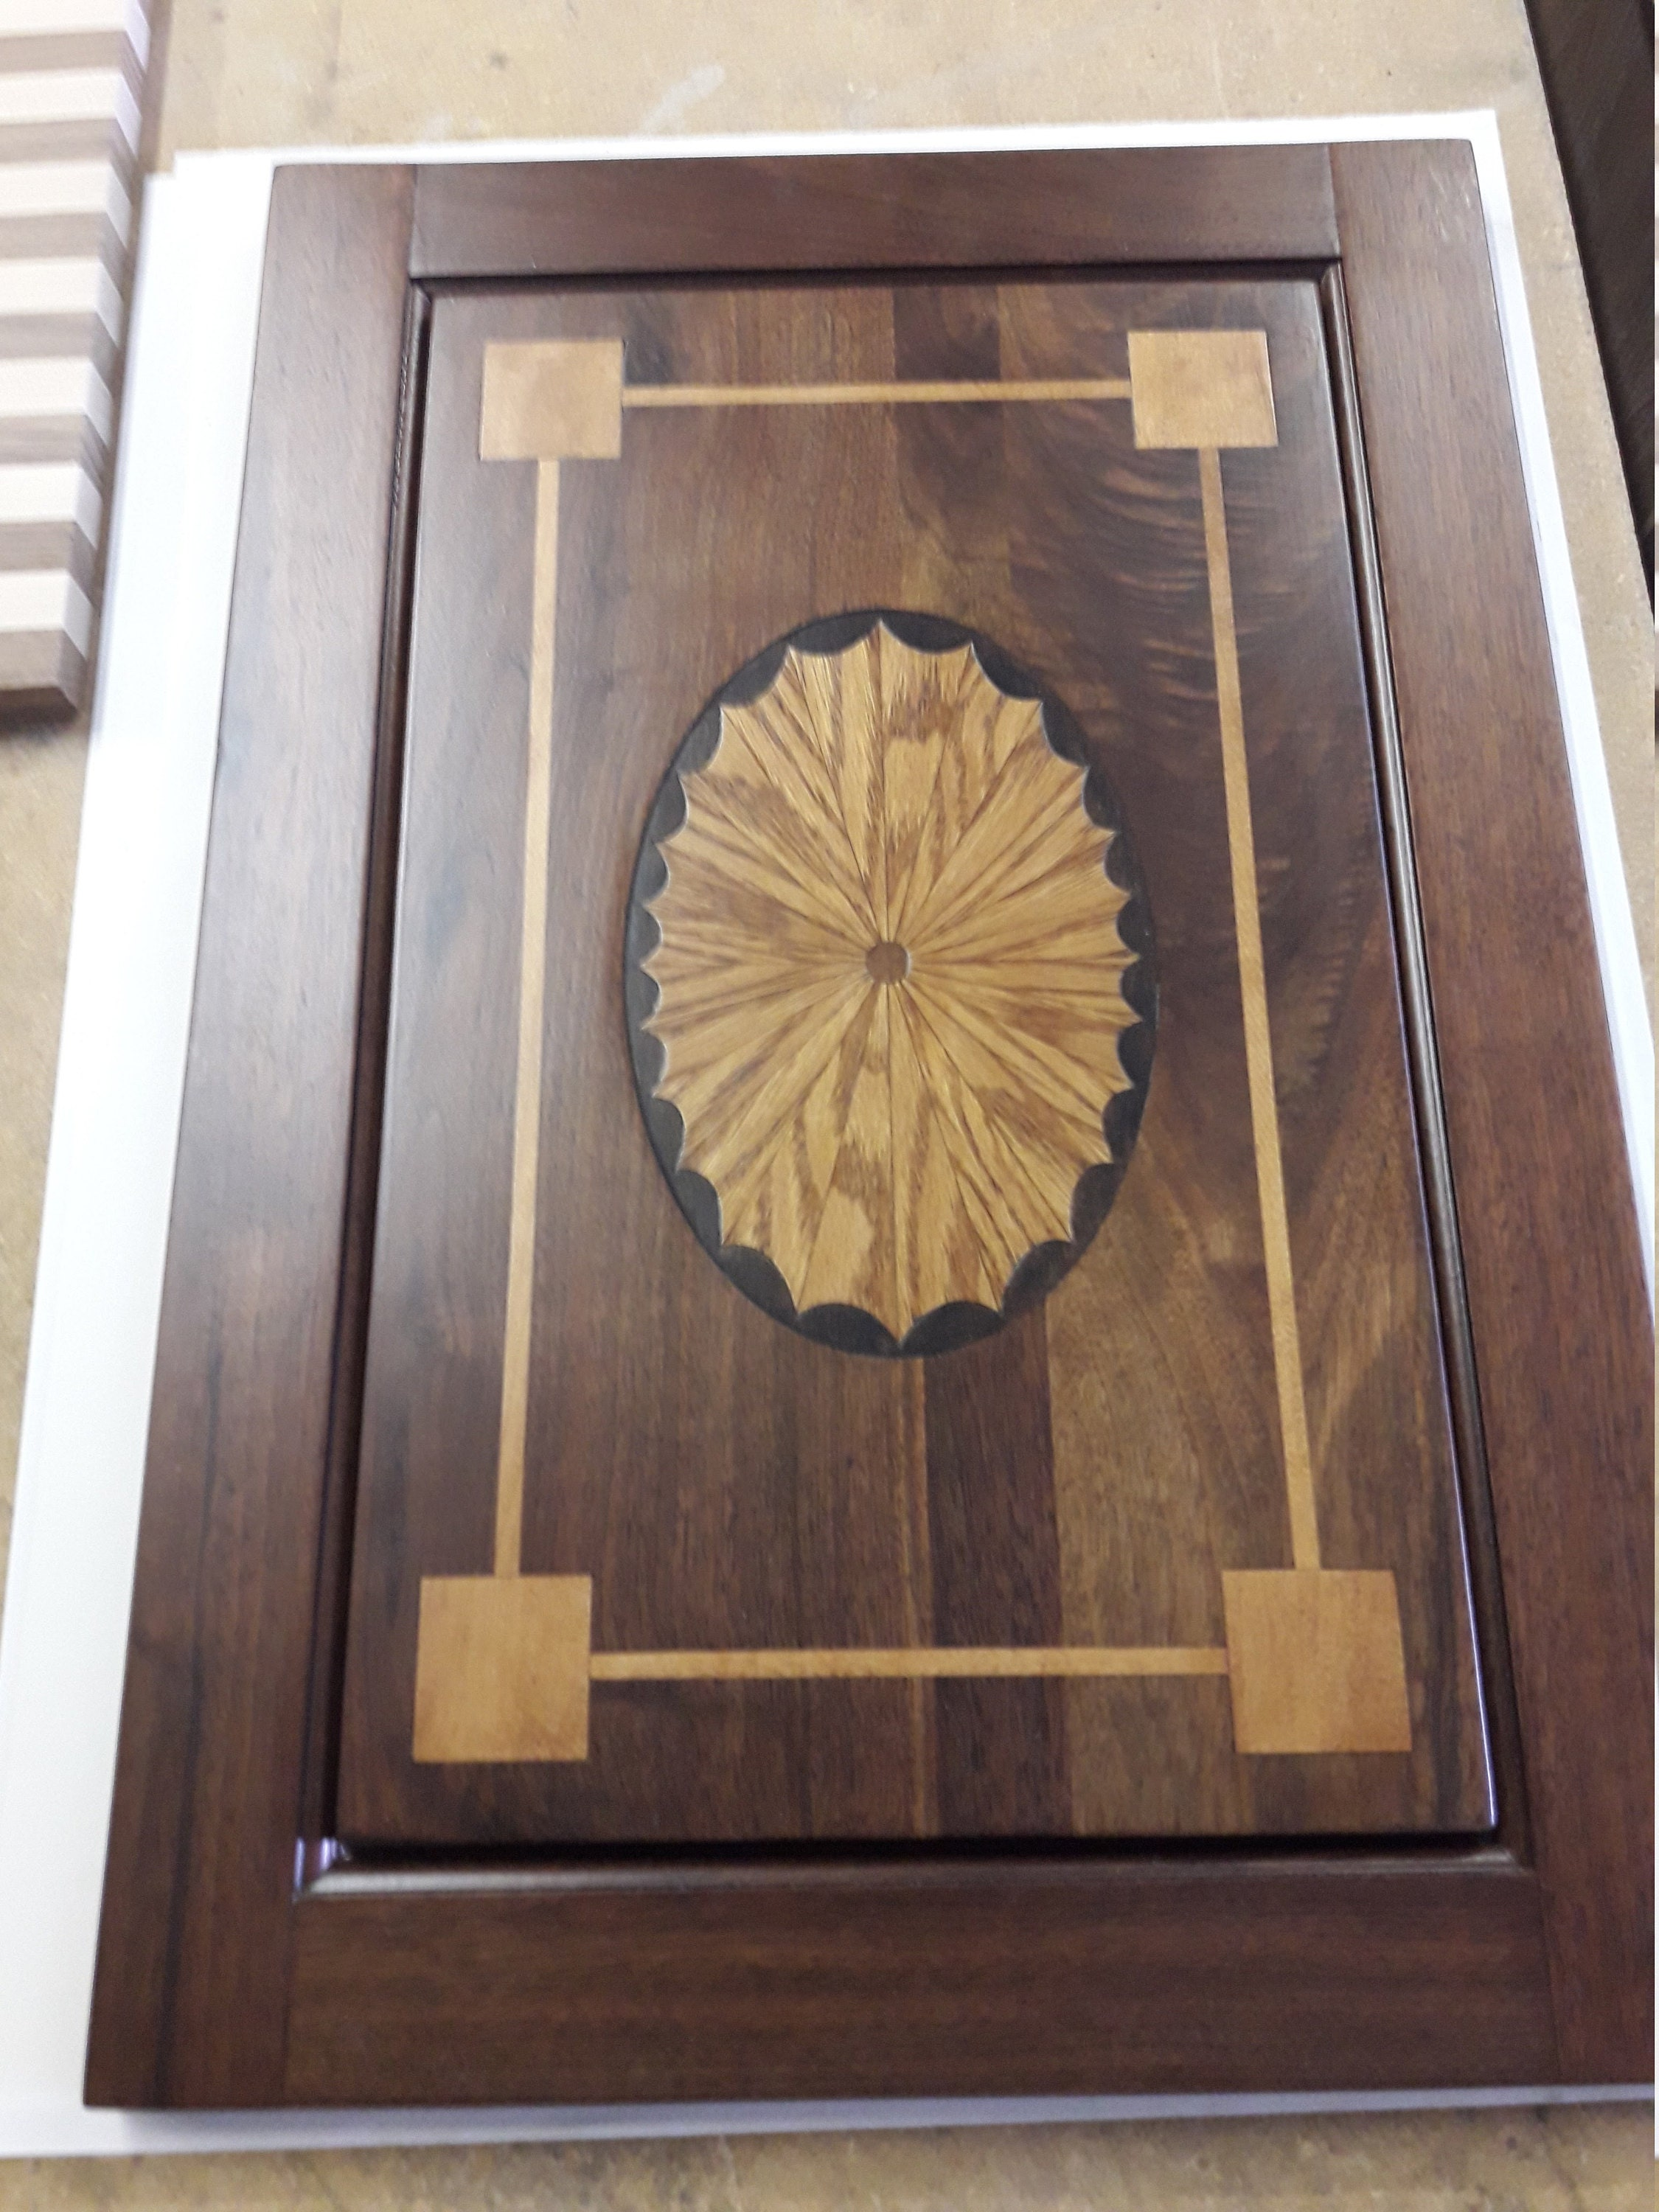 walnut console door with sunburst inlay